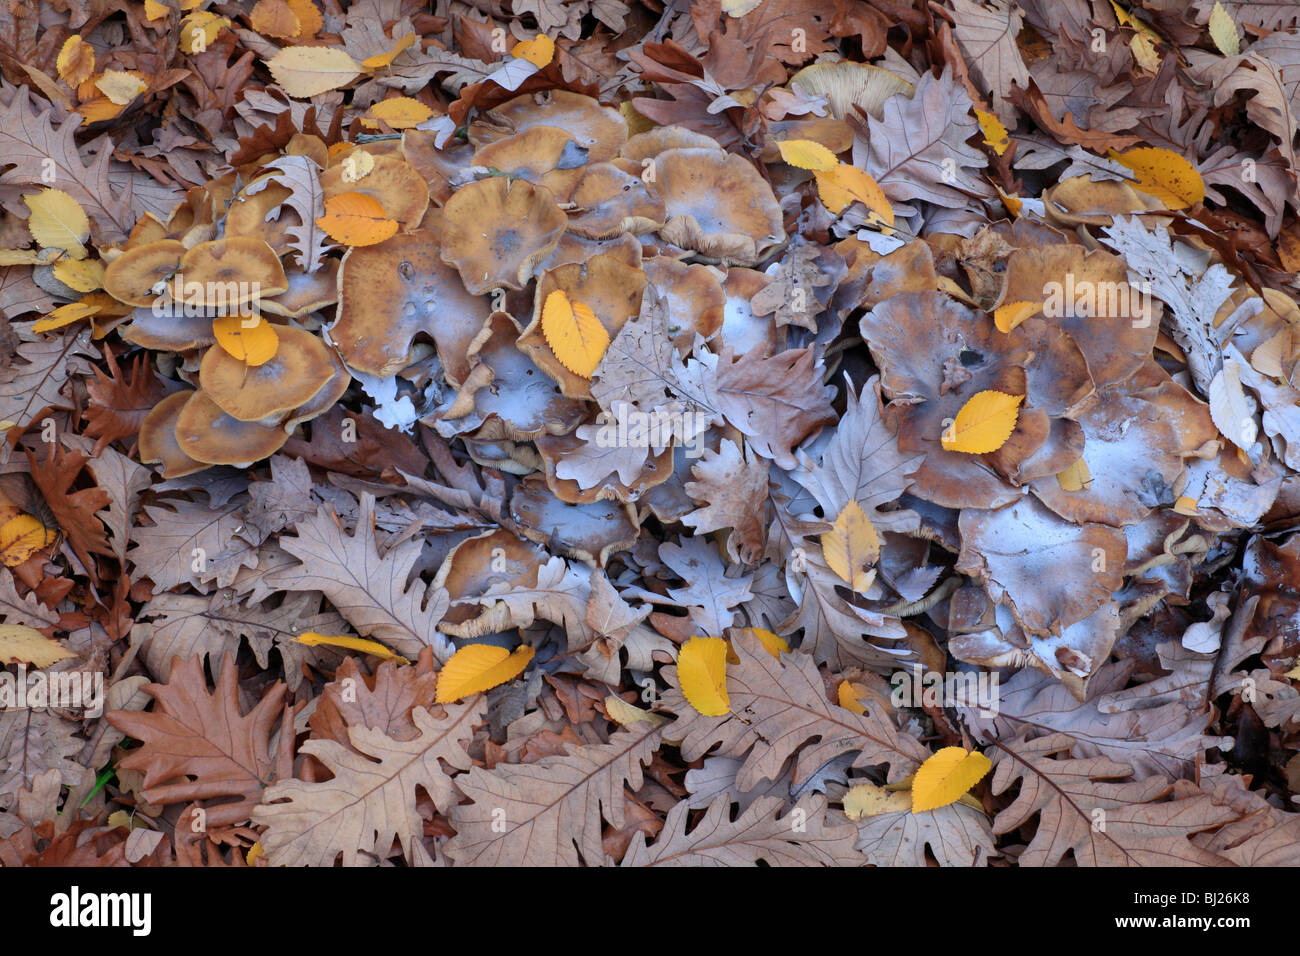 Honey Fungus (Amellaria mellea), fruiting bodies and spores among autumn leaves - Stock Image